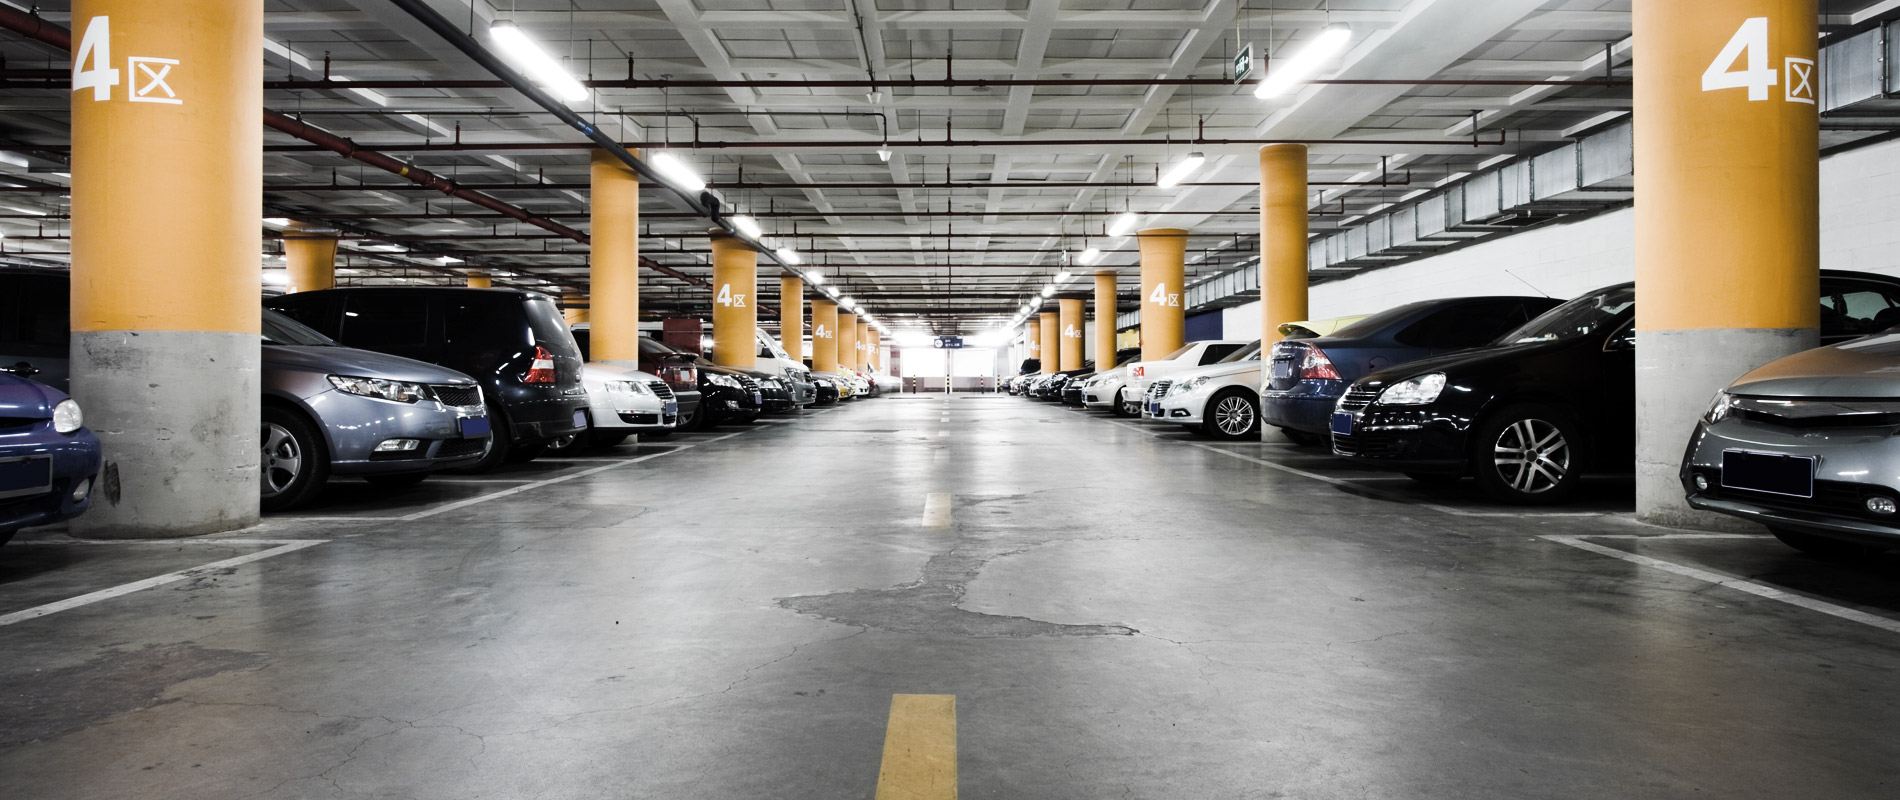 Parking Management Companies